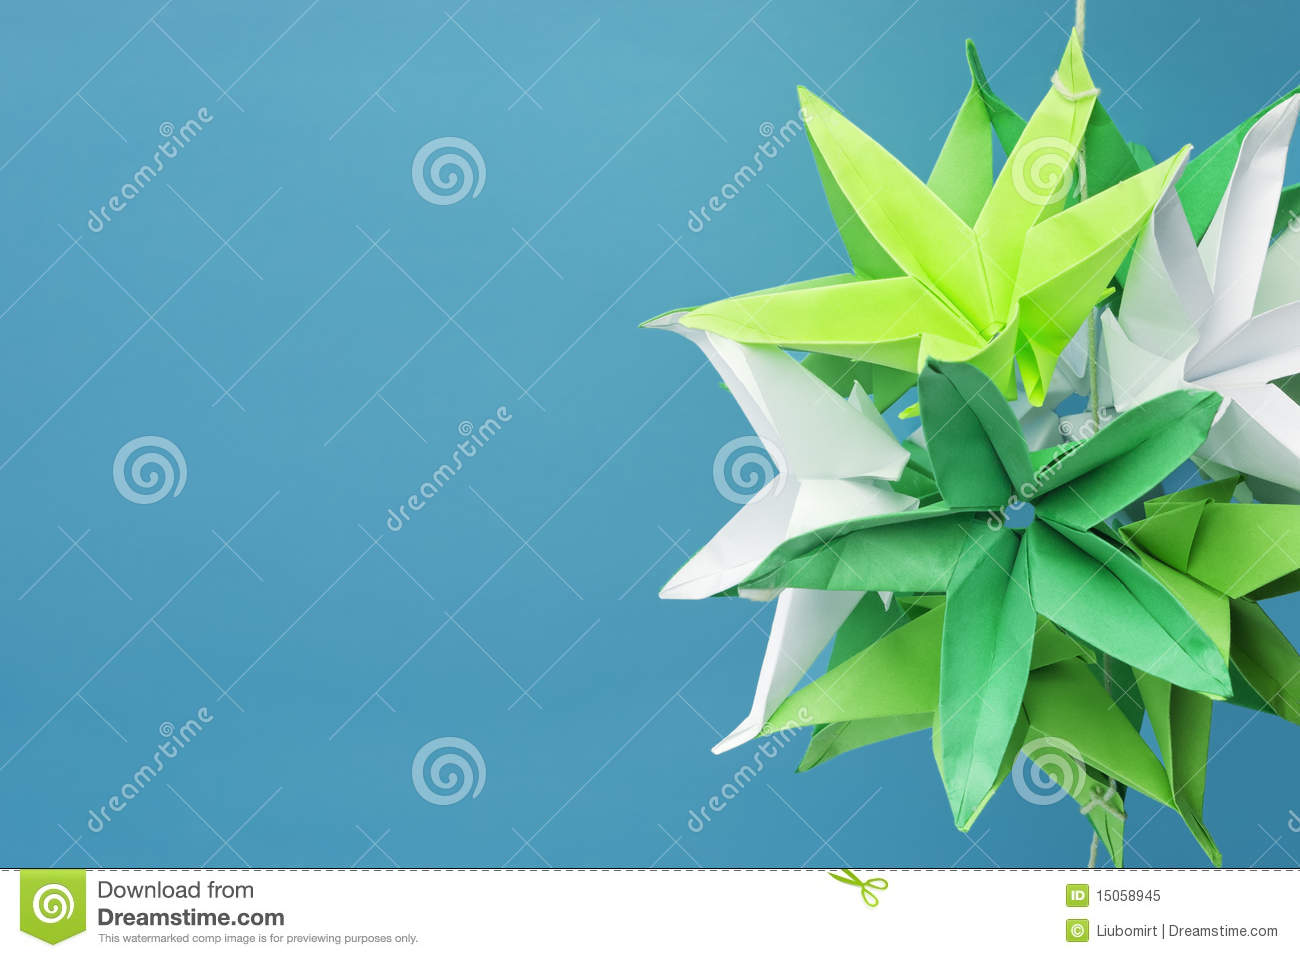 Star Shaped Origami Flowers Stock Image Image Of Cyan Closeup